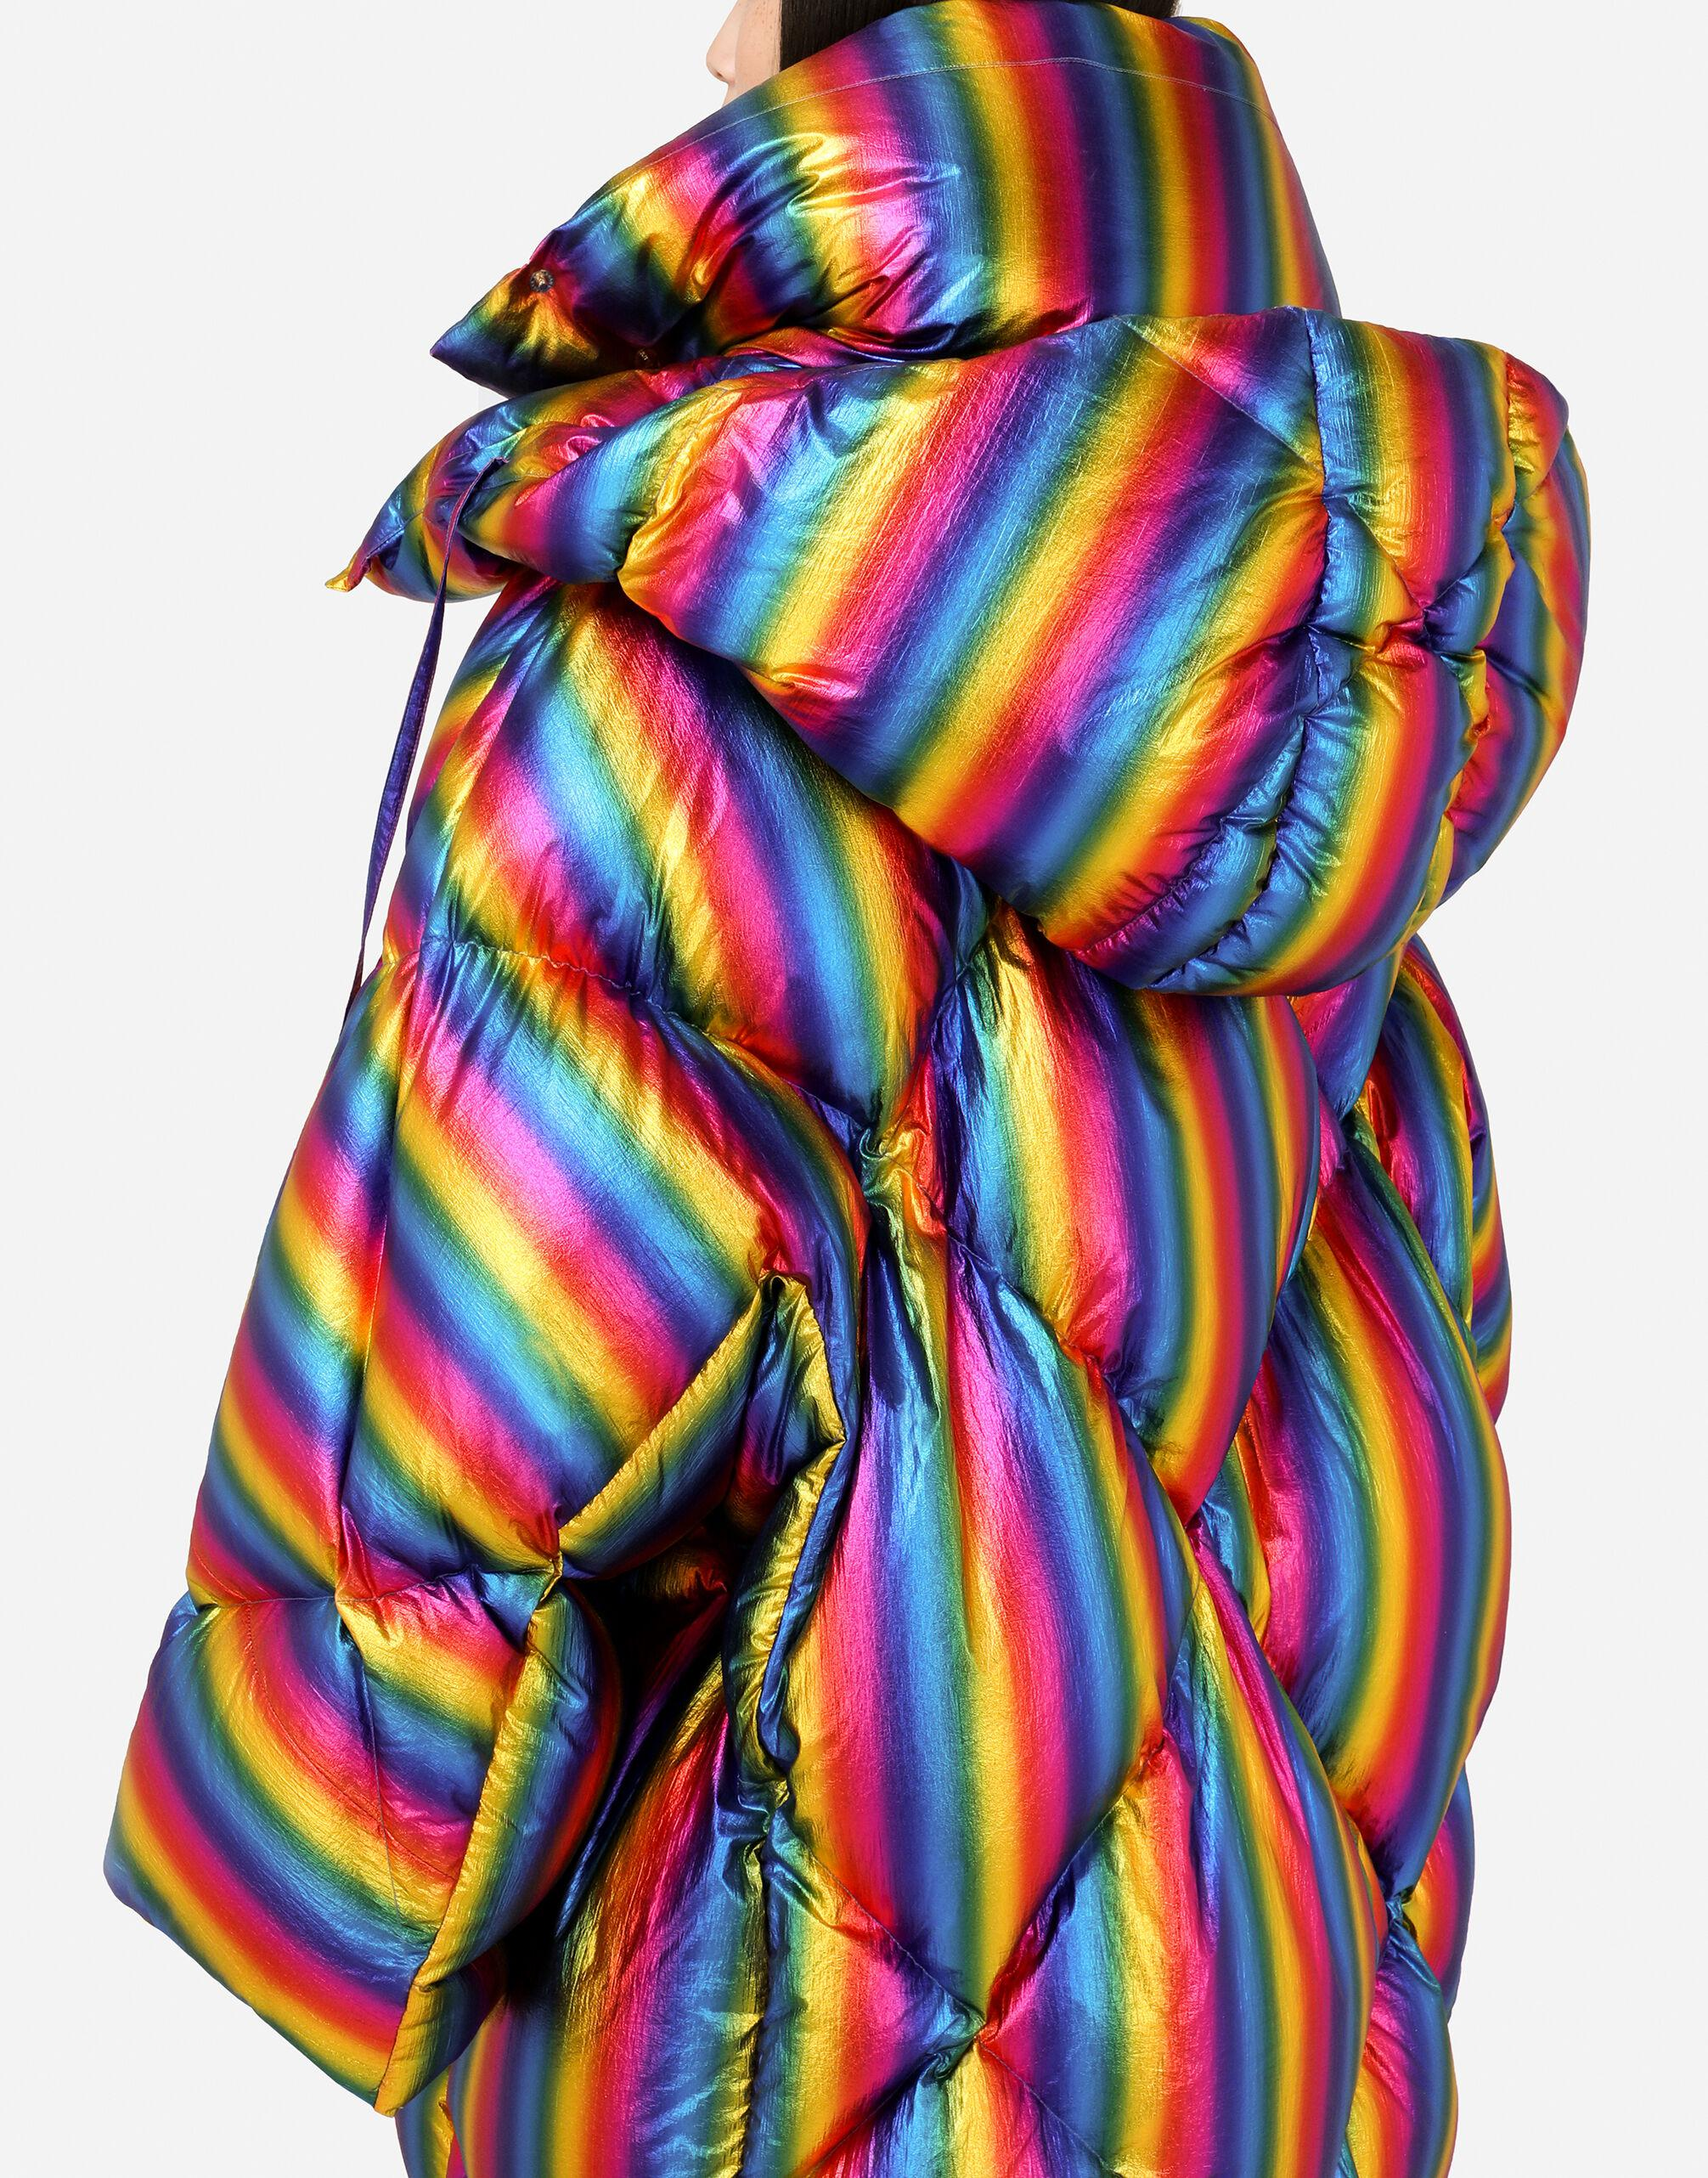 Foiled nylon down jacket with multi-colored stripes 7